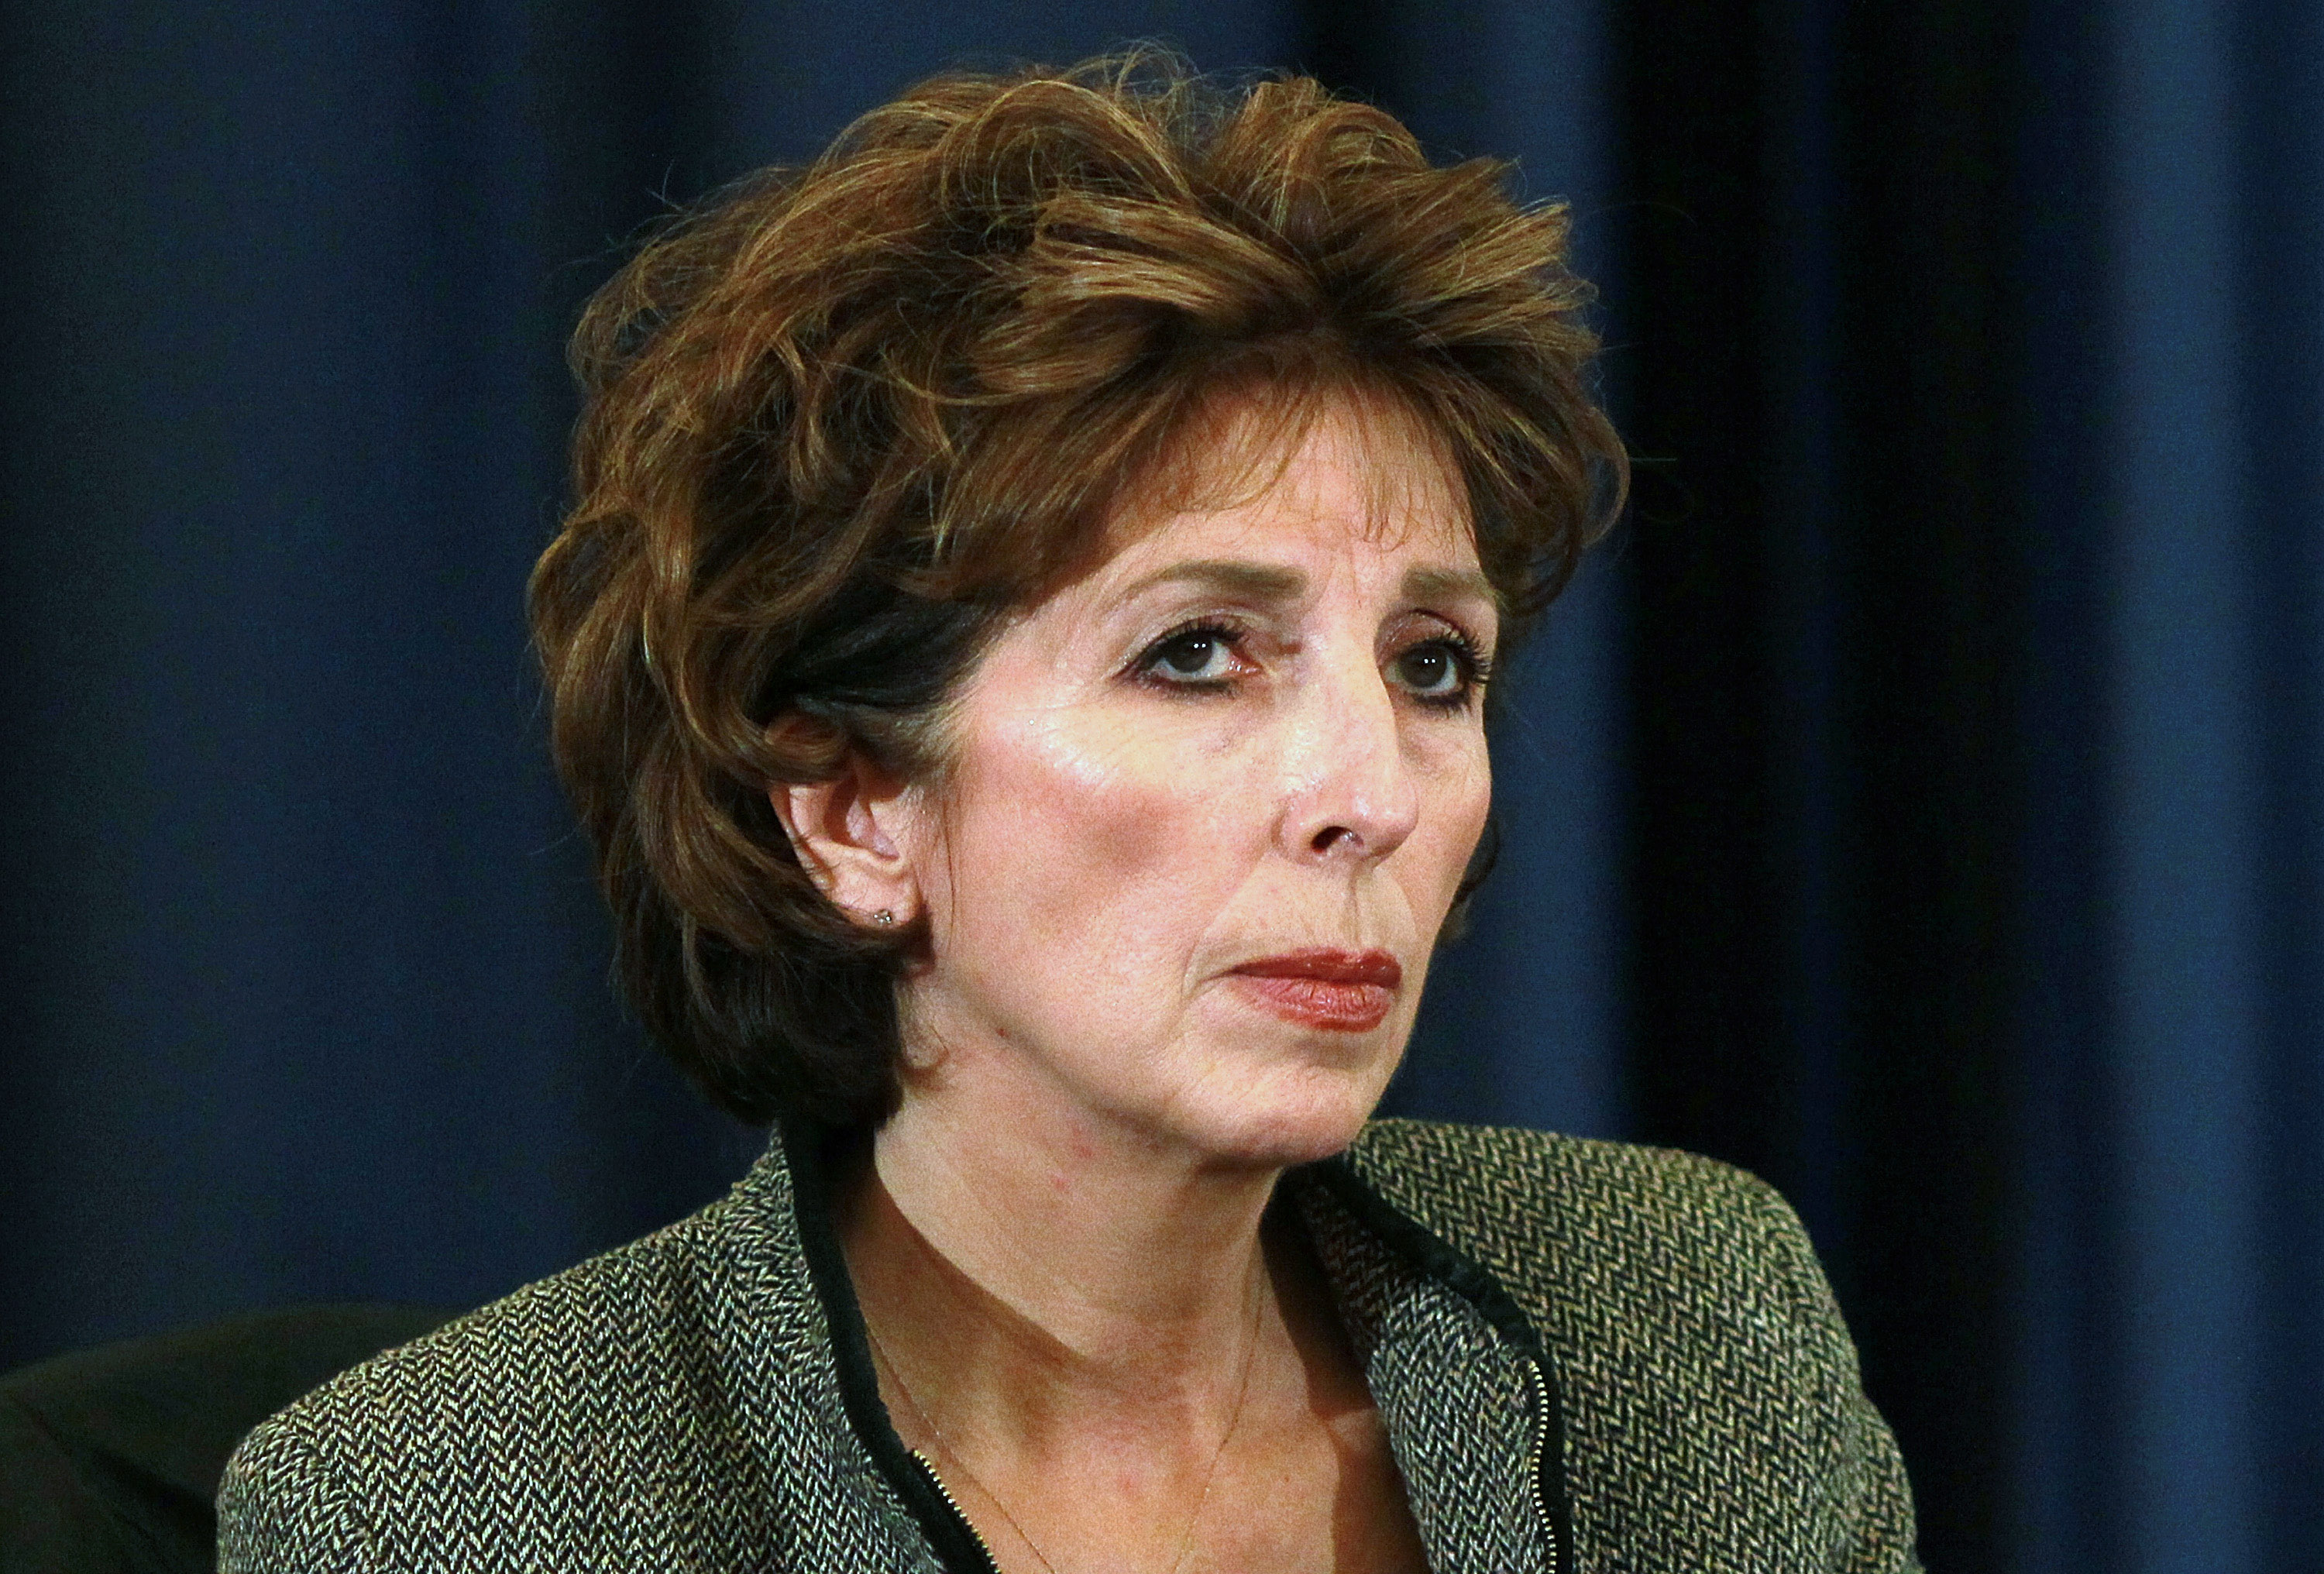 DAVIS, CA - NOVEMBER 28:  UC Davis chancellor Linda Katehi looks on during a UC Regents meeting on the UC Davis campus on November 28, 2011 in Davis, California. Student protesters and members of the Occupy movement are calling for a general strike at the UC Davis campus to coincide with the UC Regents meeting that is being held on four UC campuses. Students are outraged in the wake of an incident where a UC Davis police officer pepper sprayed protestors who sat passively with their arms locked.  (Photo by Justin Sullivan/Getty Images)